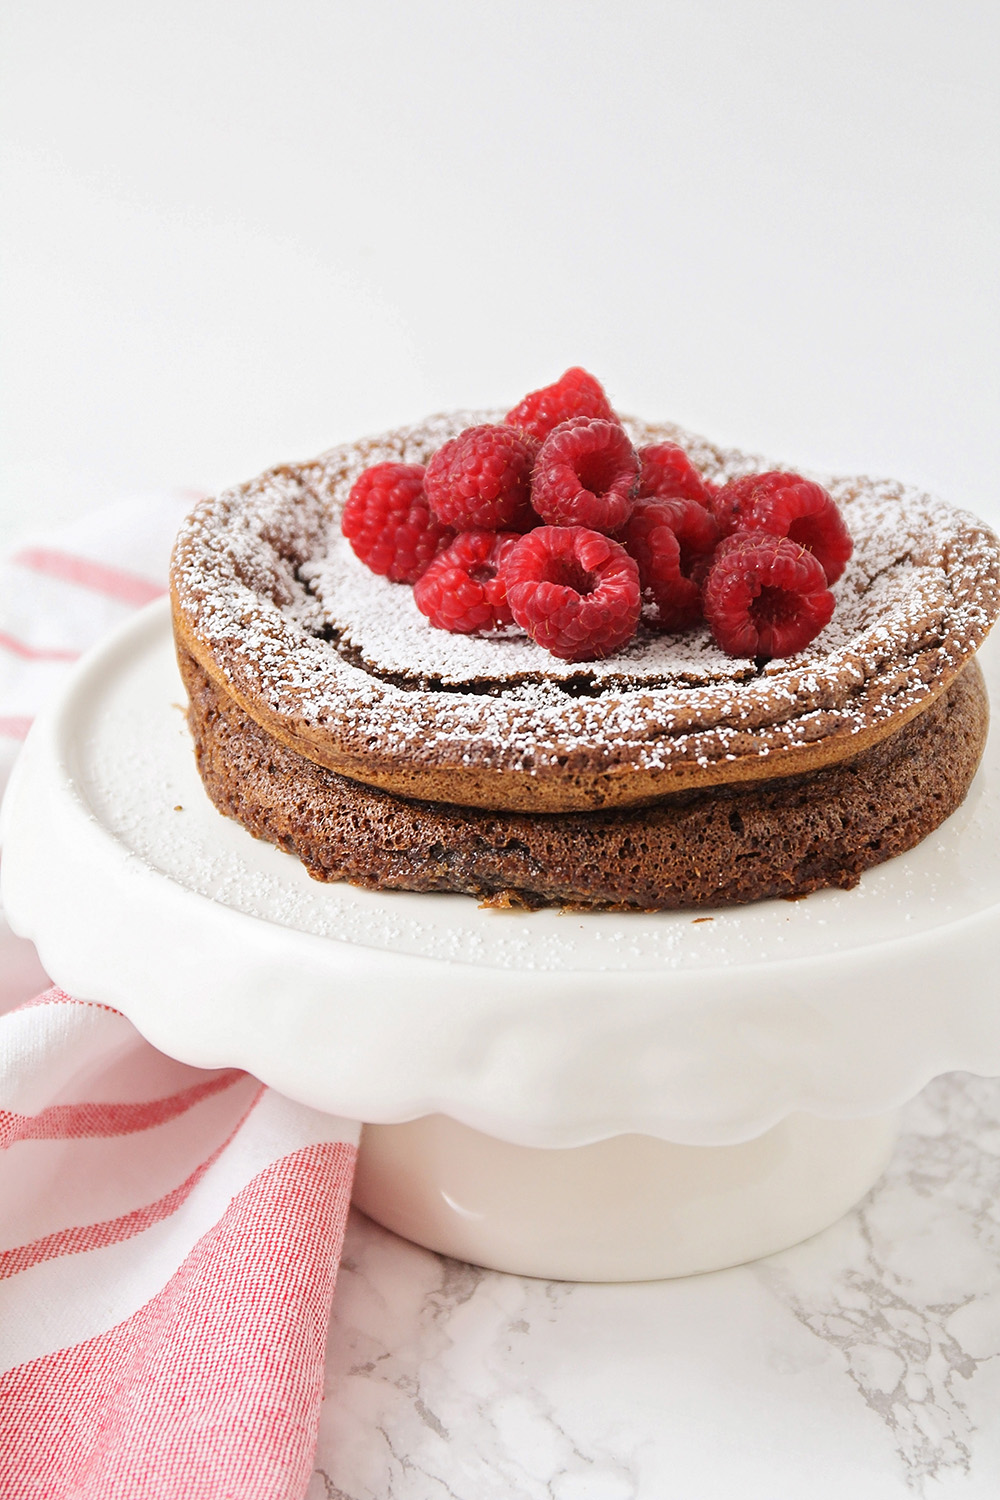 This luscious and decadent flourless chocolate cake is as simple as it is delicious!